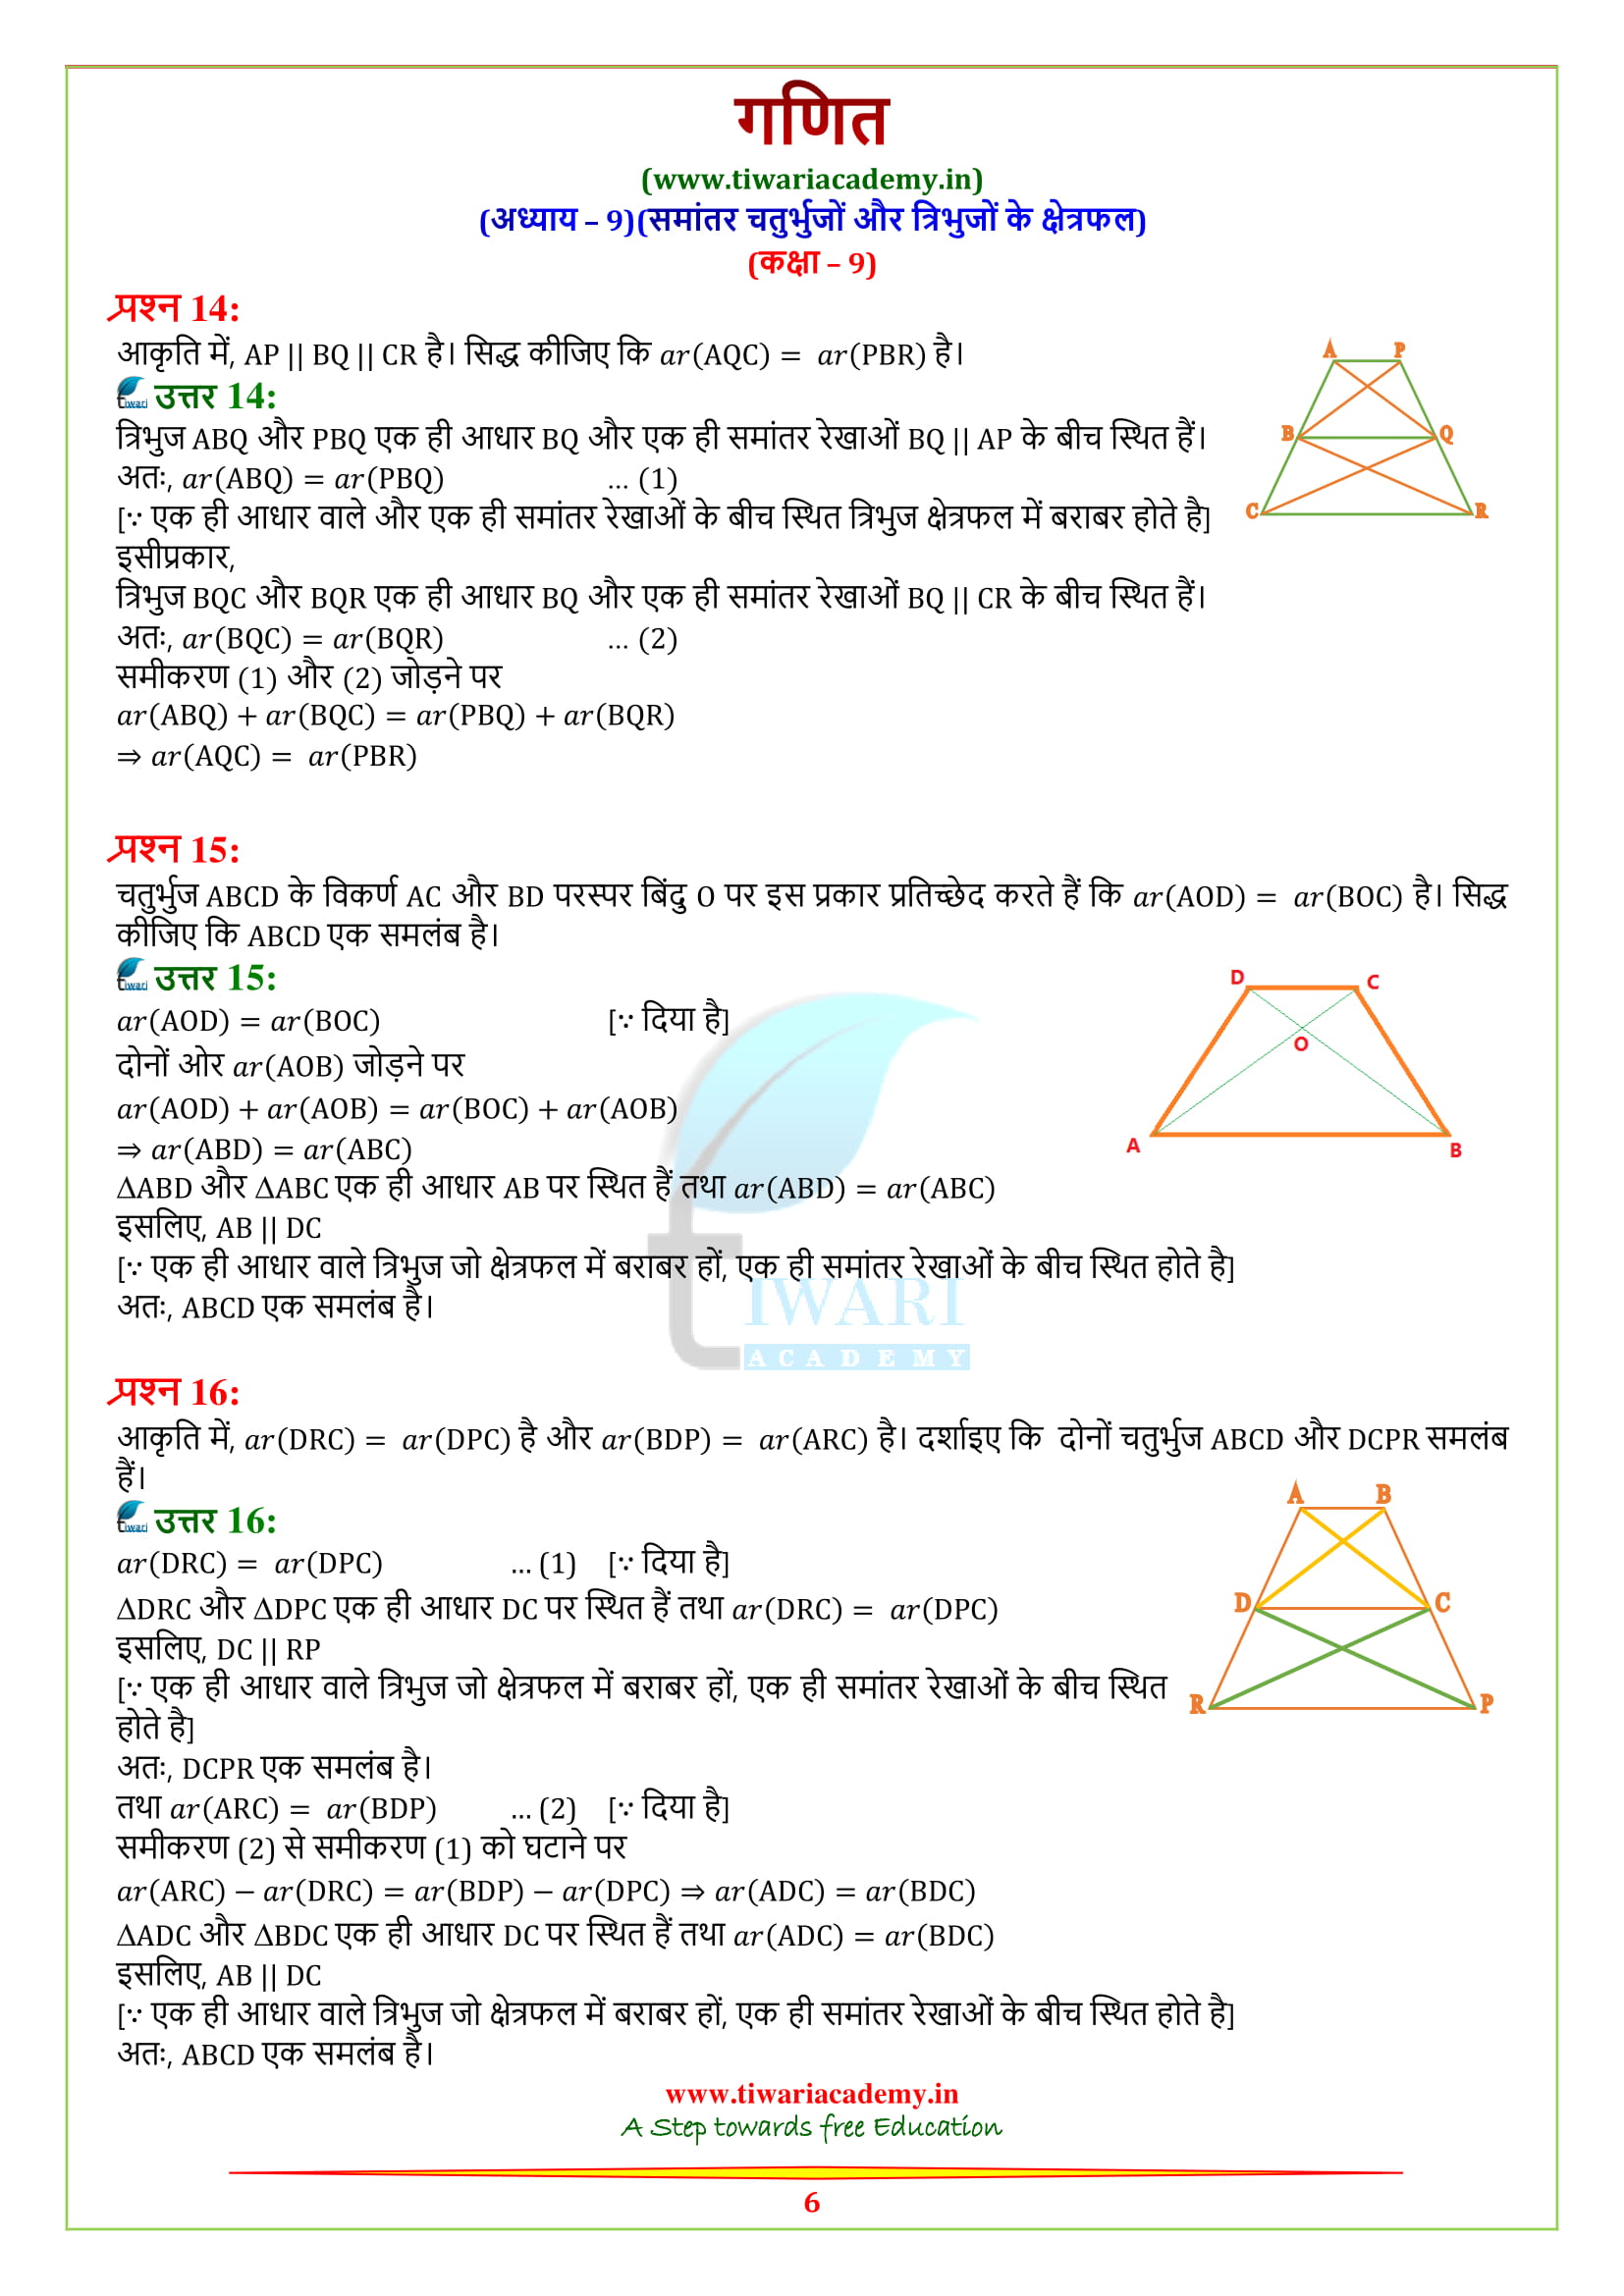 9 Maths Exercise 9.3 solutons download pdf